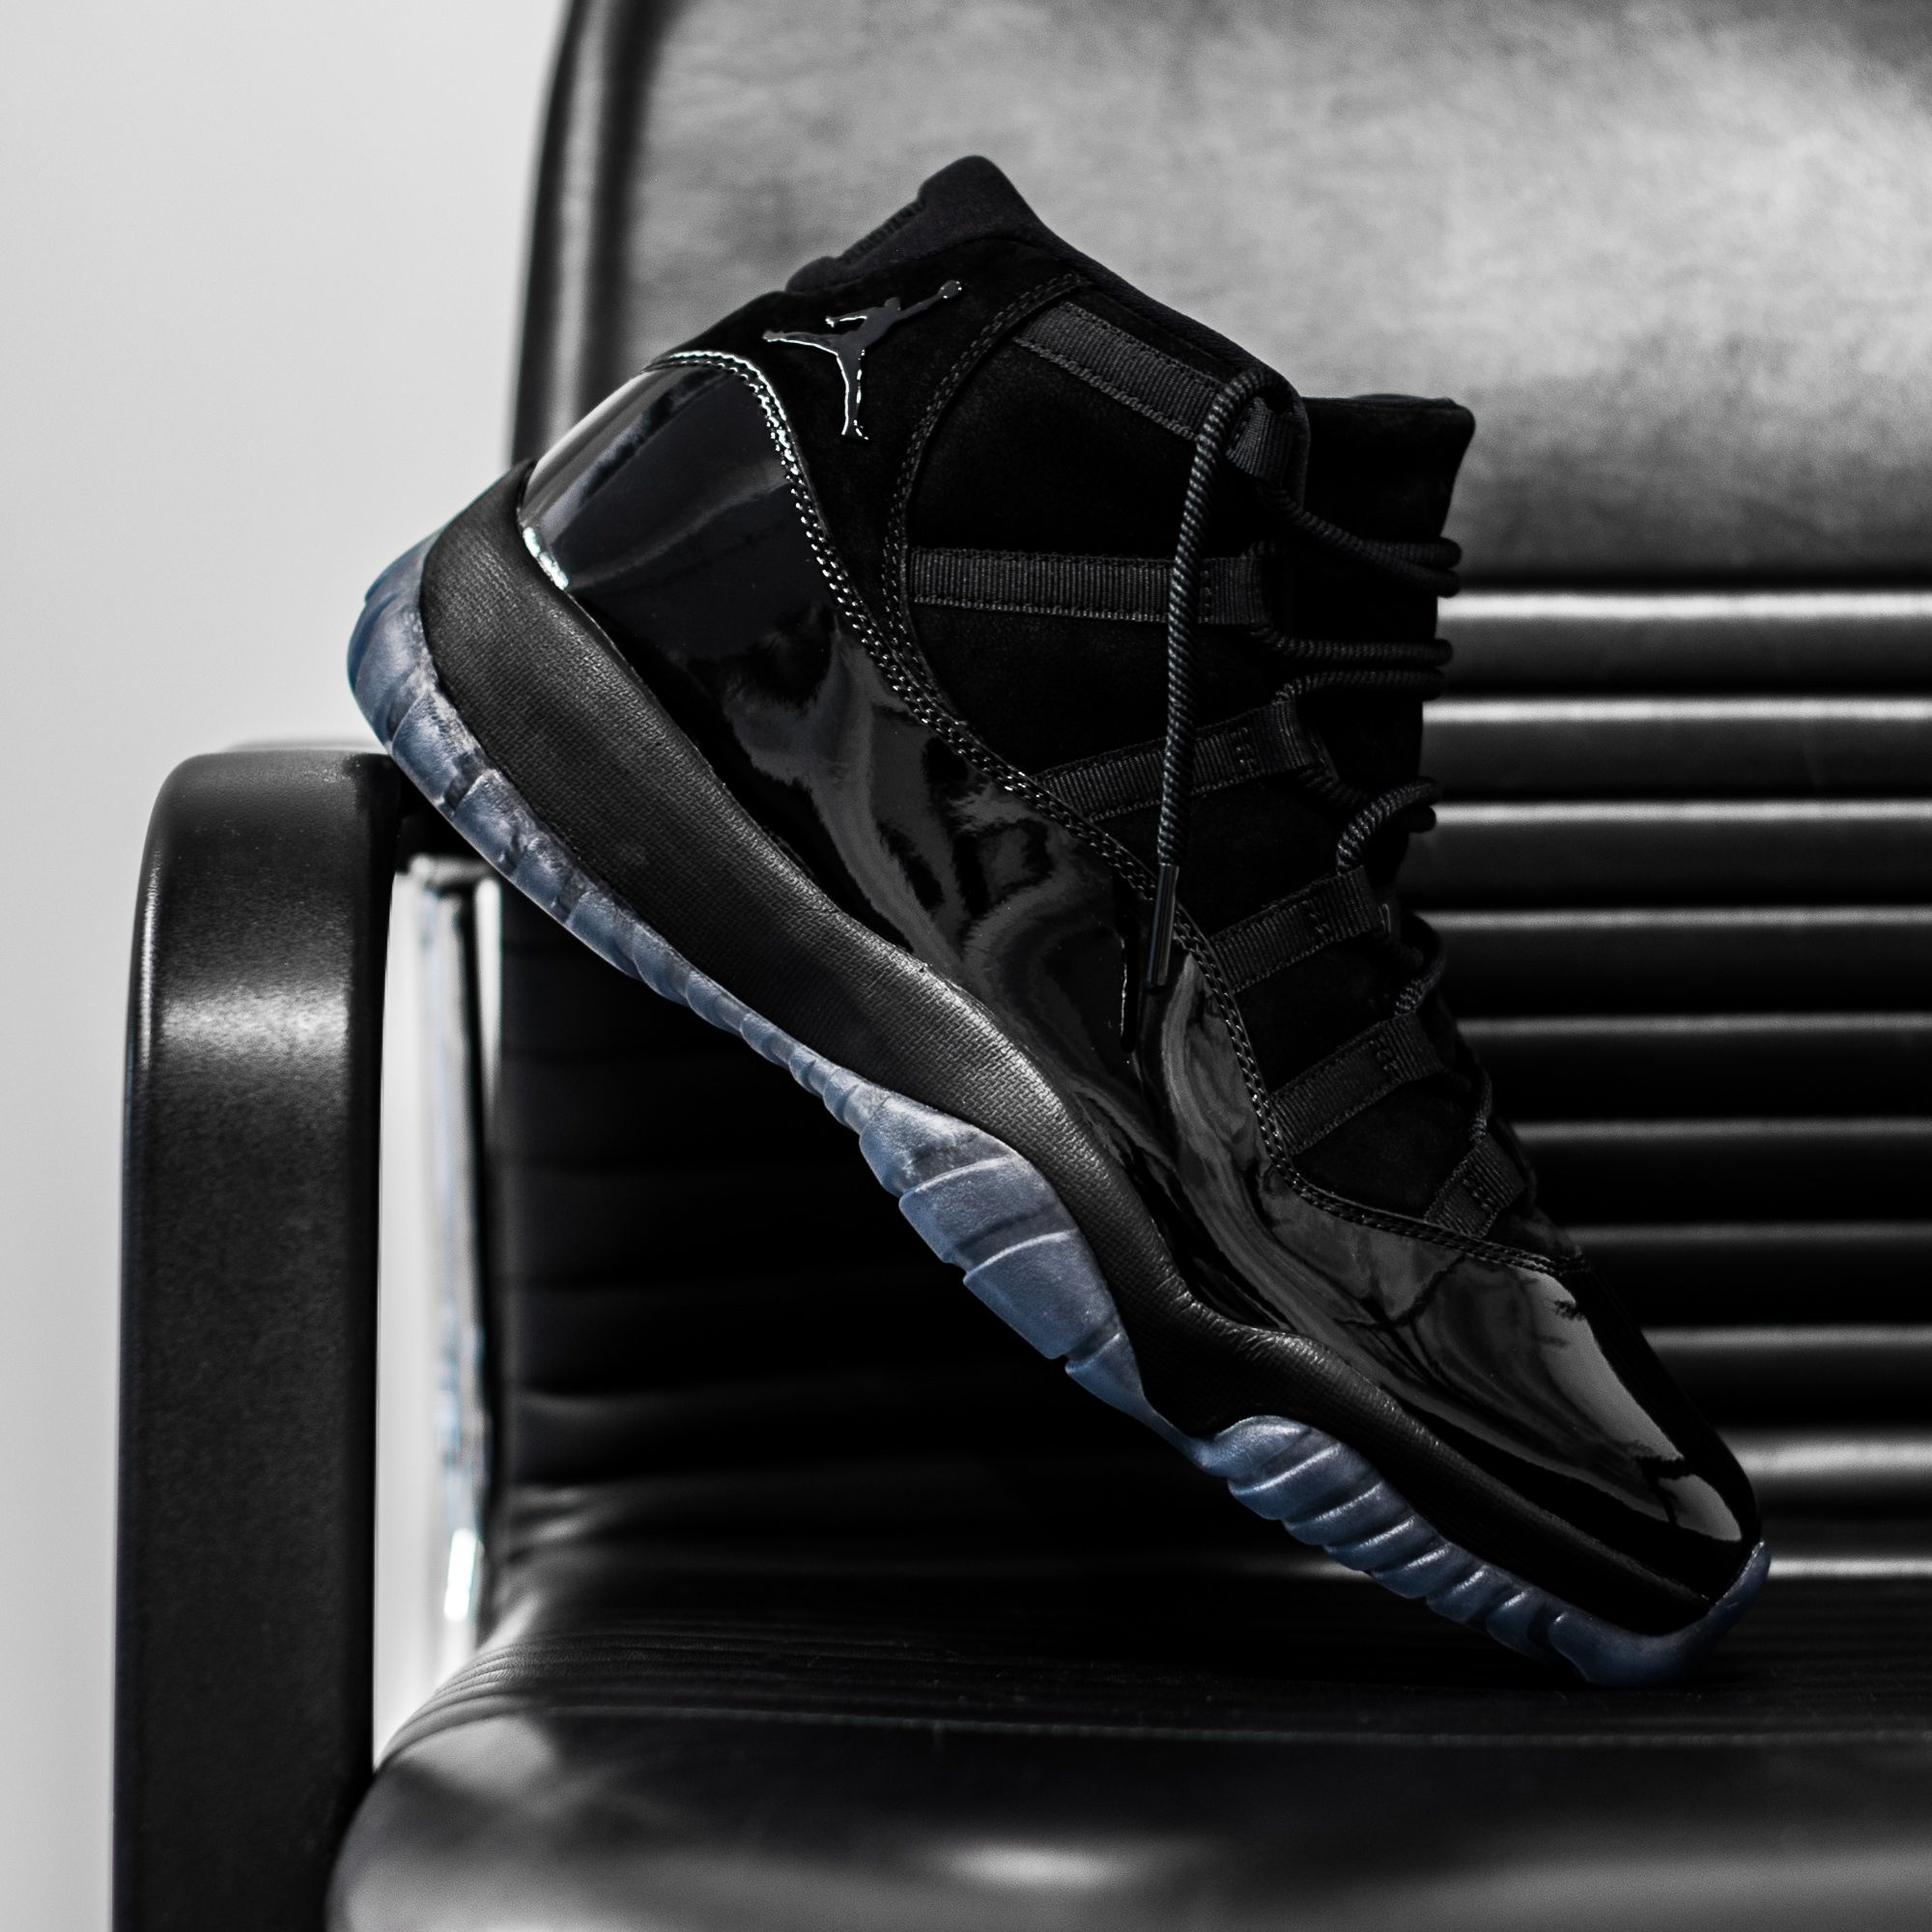 The spotlight is on you with these Air Jordan 11